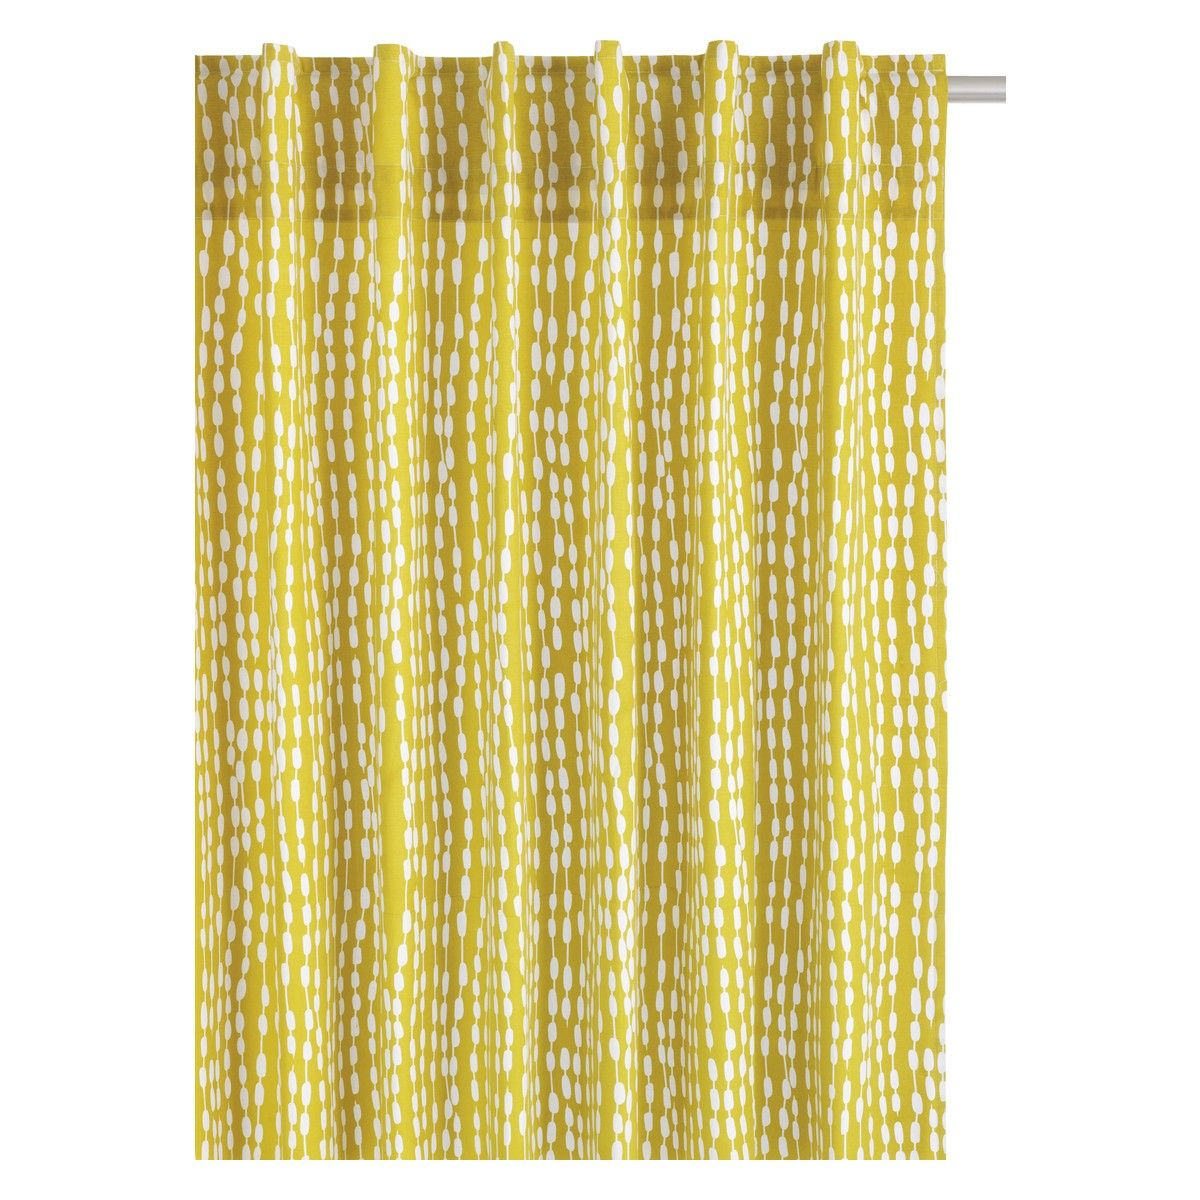 Trene Pair Of Yellow Patterned Curtains 145 X 280cm Buy Now At Habitat Uk Curtain Patterns Yellow Pattern Curtains